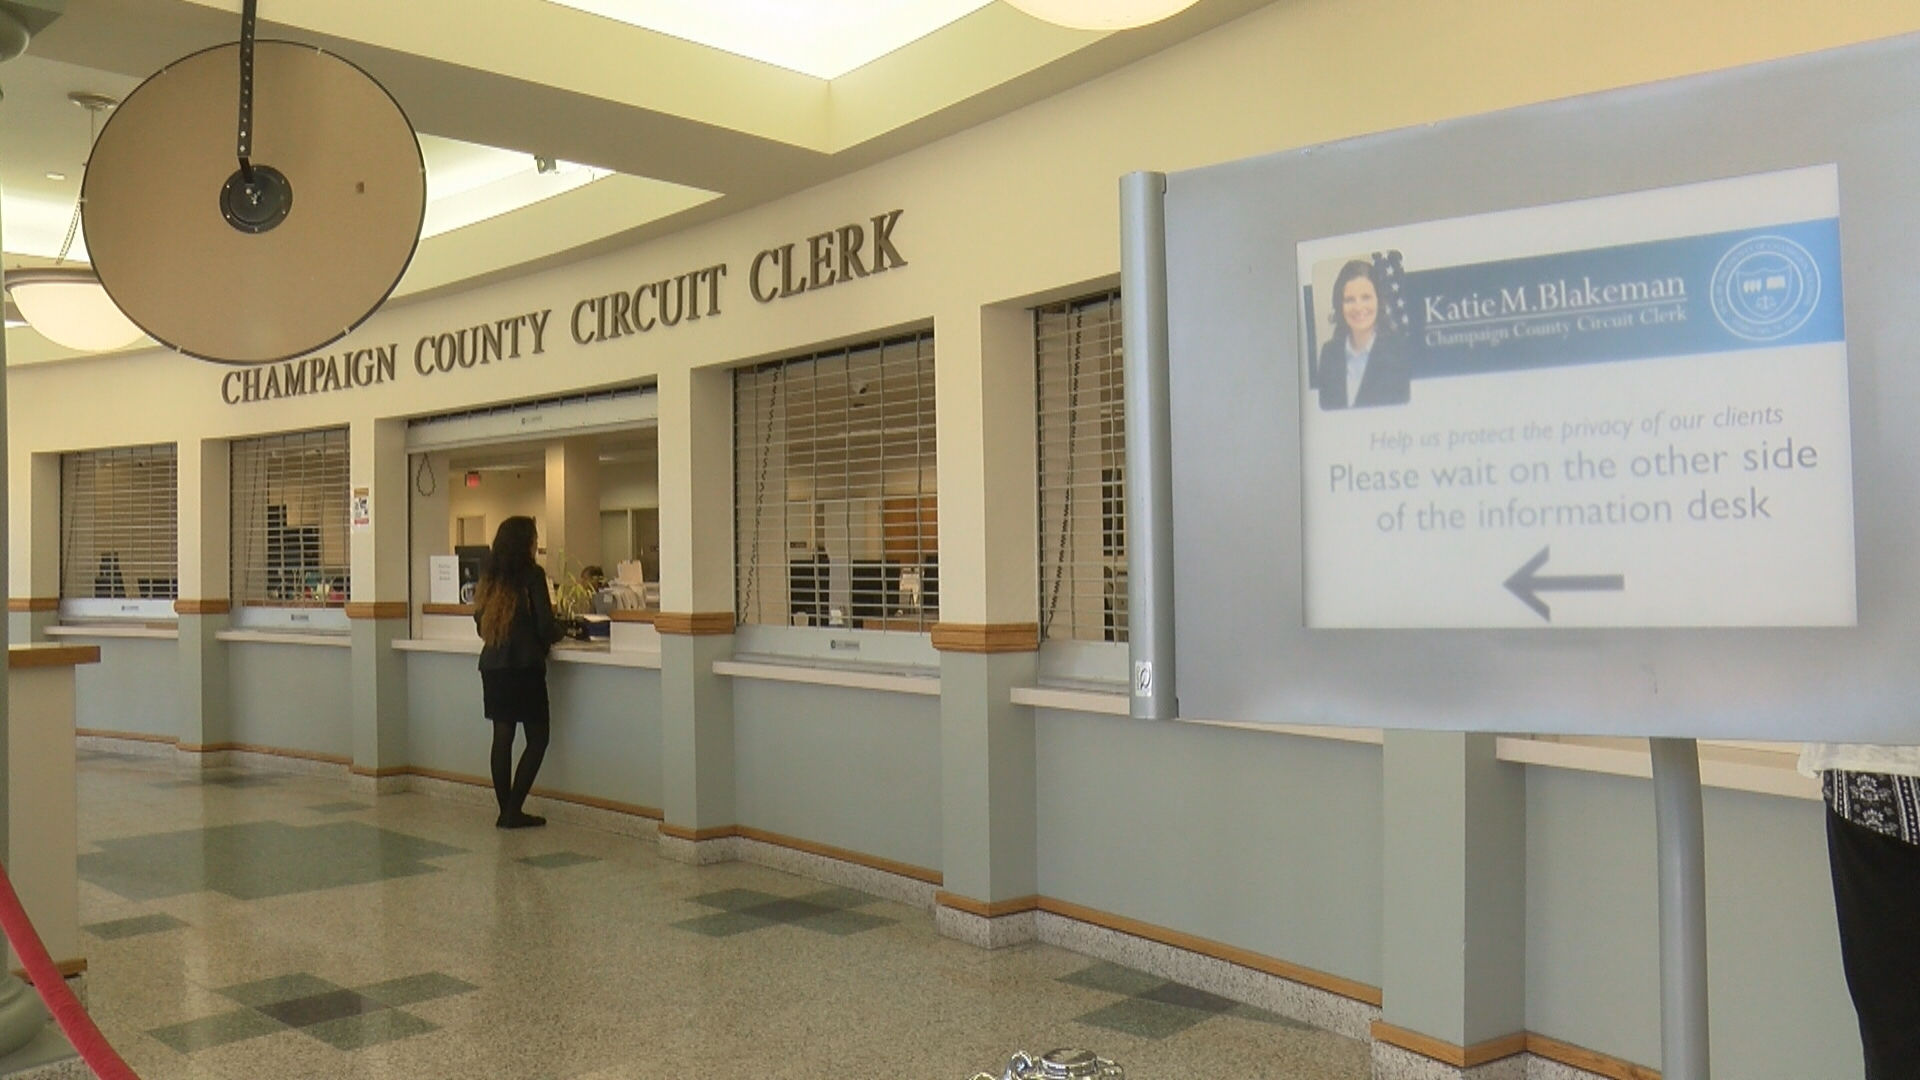 champaign county circuit clerk_1505164699407.jpg